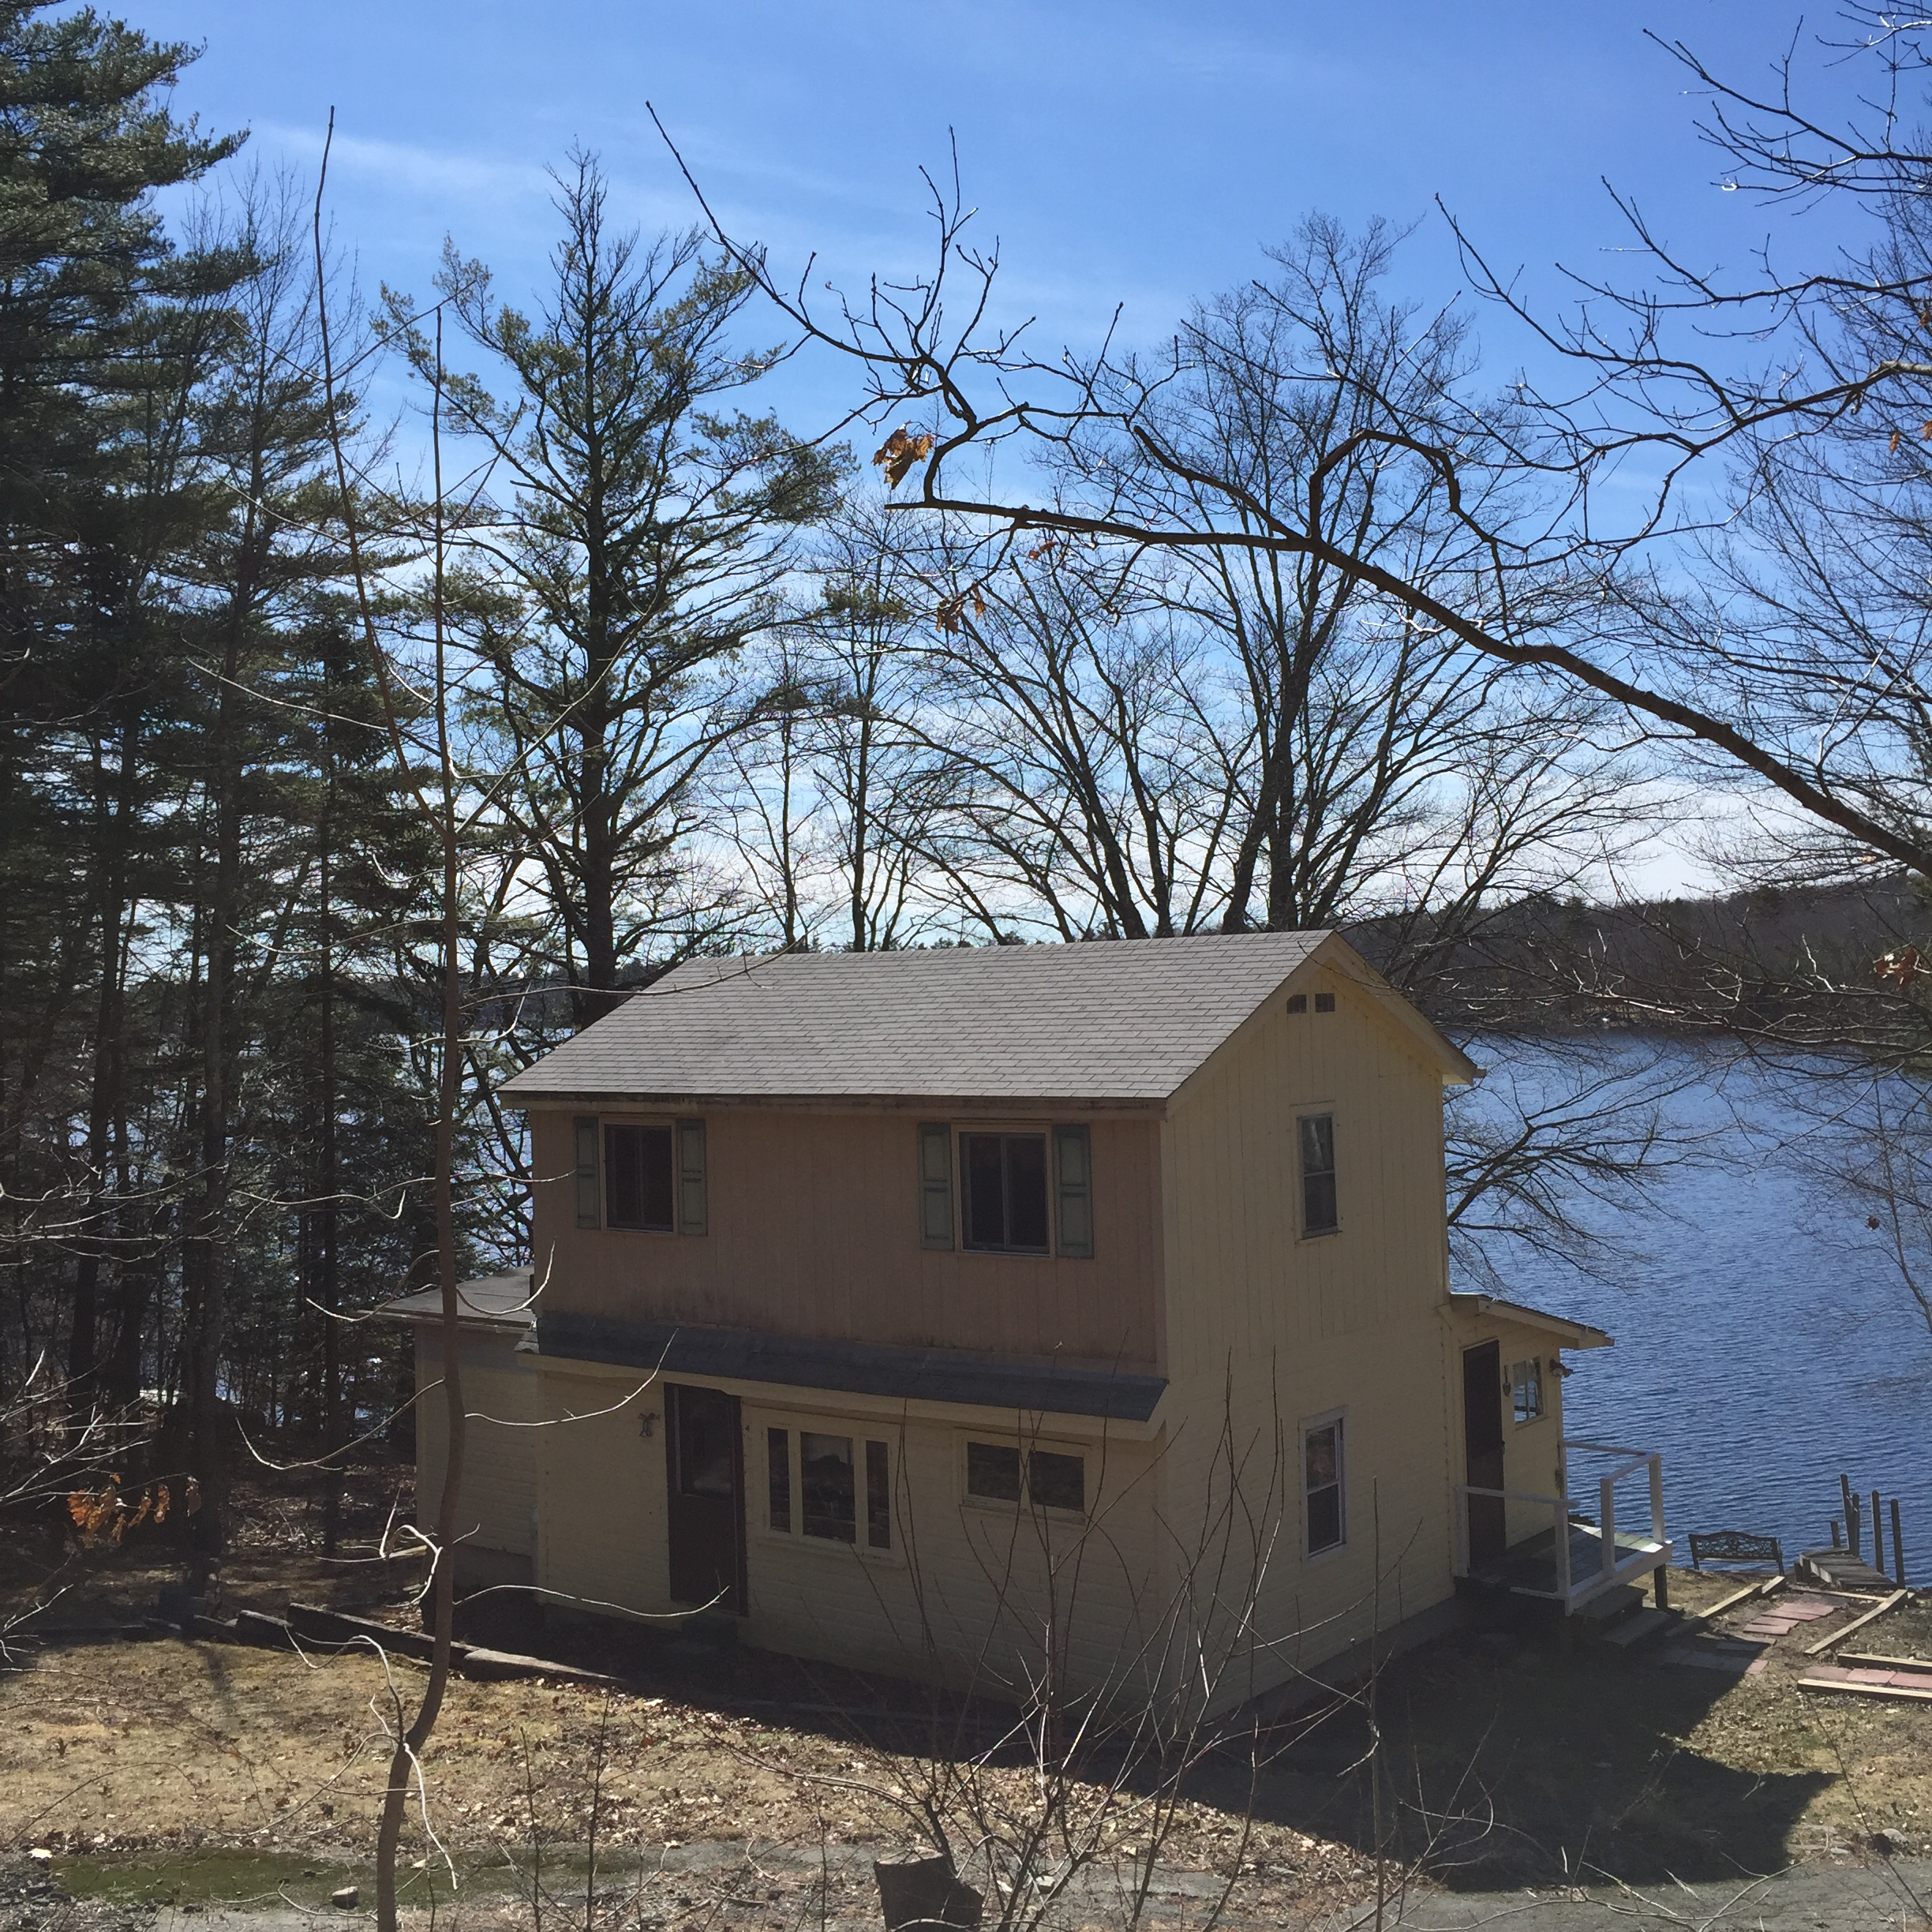 Single Family Home for Sale at Burma Road 37 Burma Road Nobleboro, Maine, 04551 United States